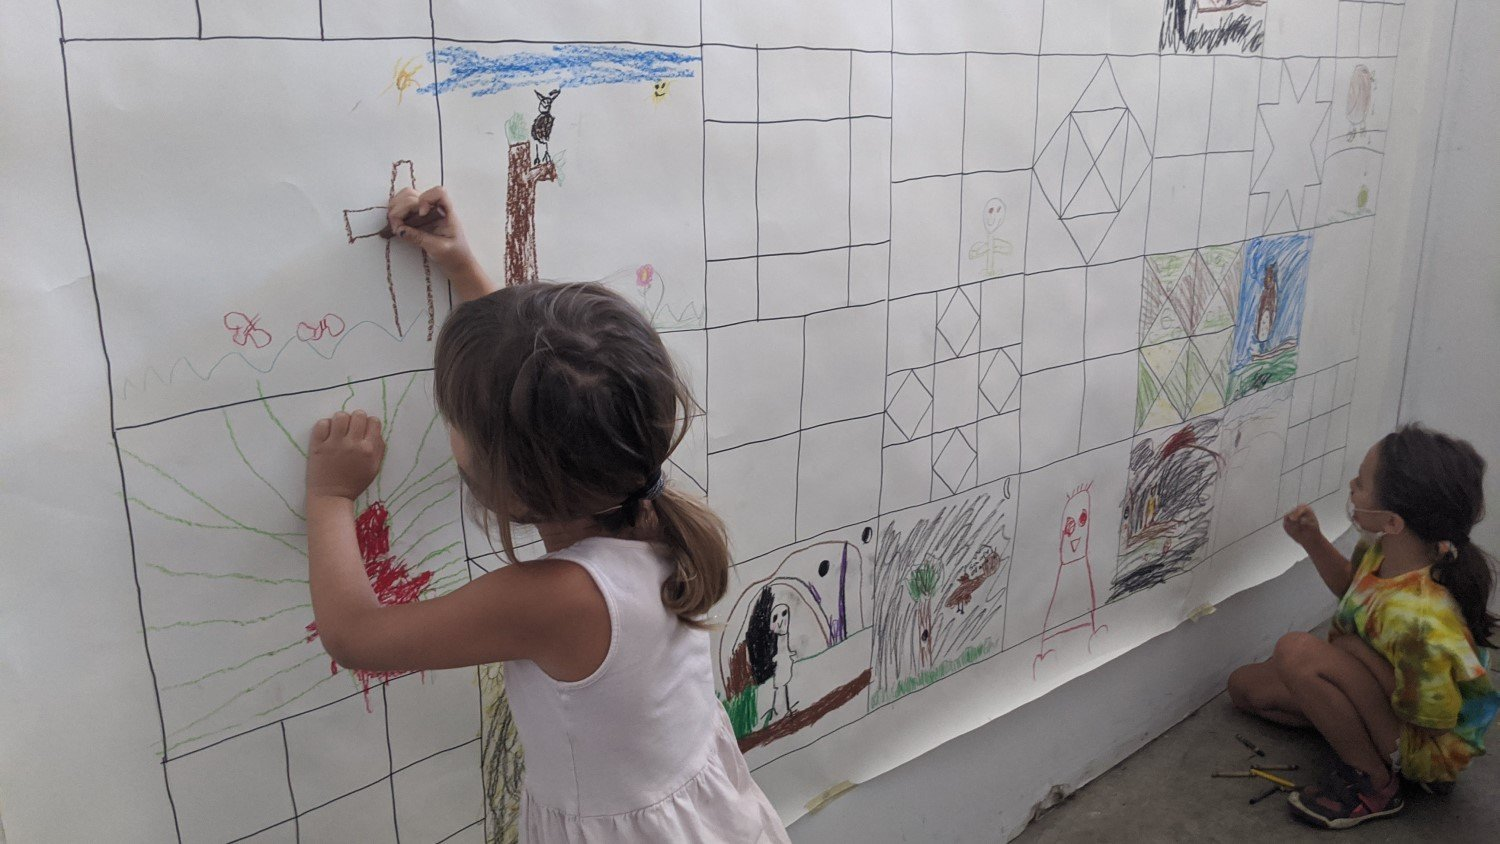 Children collaborate on artwork while distancing during MAC's June summer camp